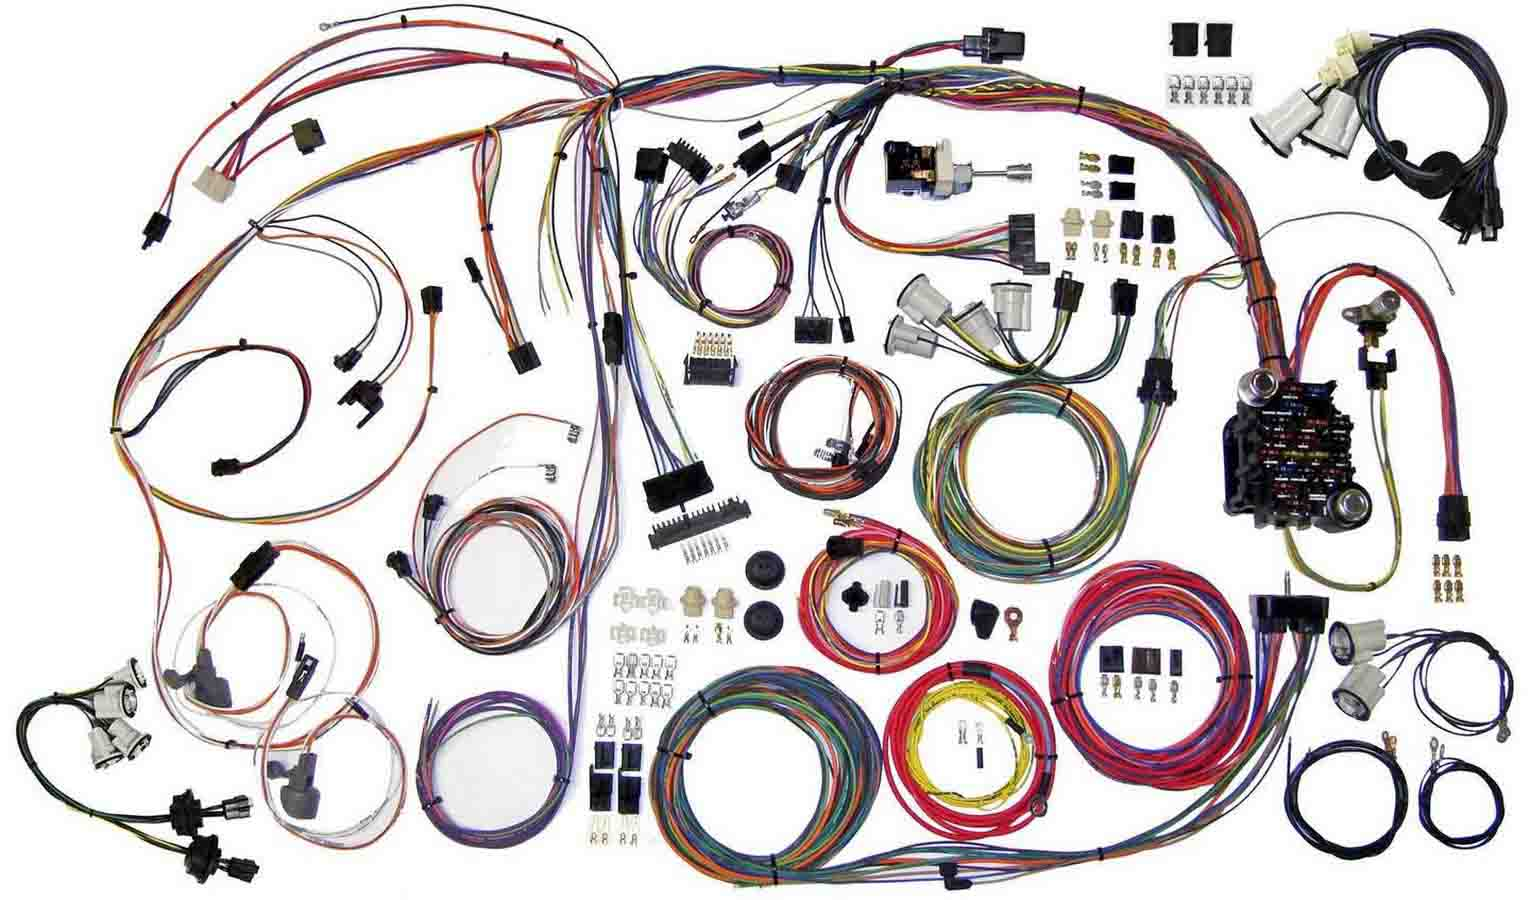 hight resolution of 70 72 chevy monte carlo wiring kit